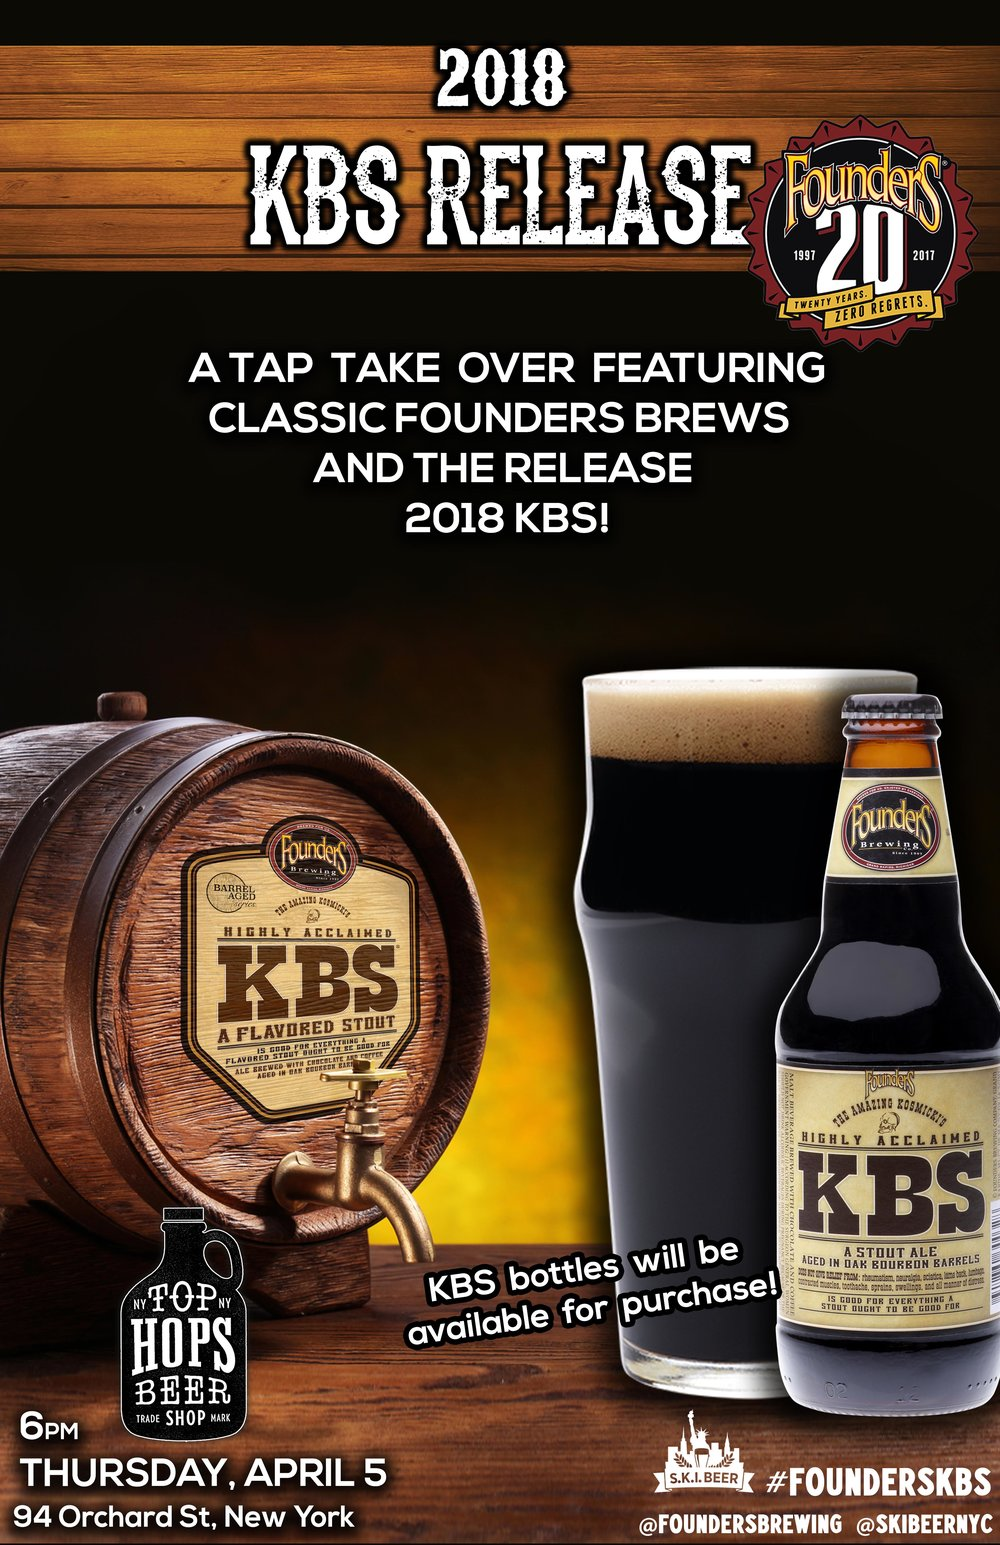 TOP HOPS_FOUNDERS KBS.jpg